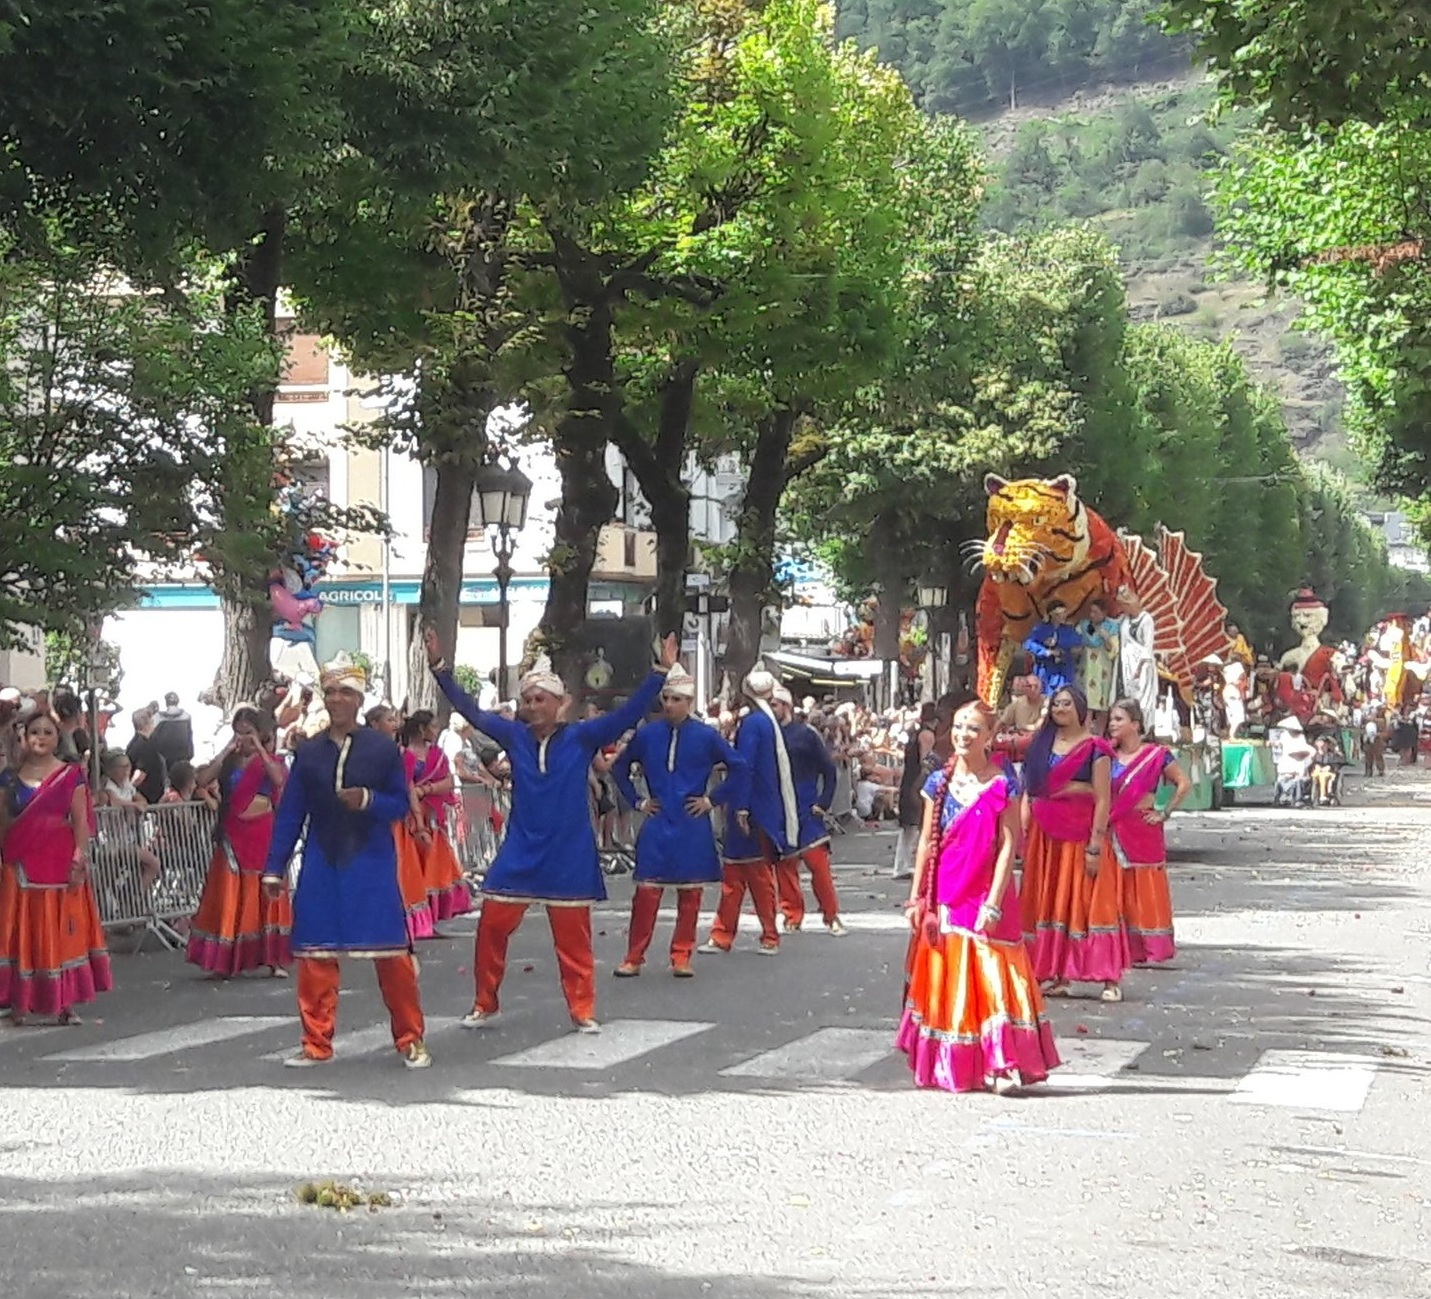 The Fetes des Fleurs - the annual festival in Luchon